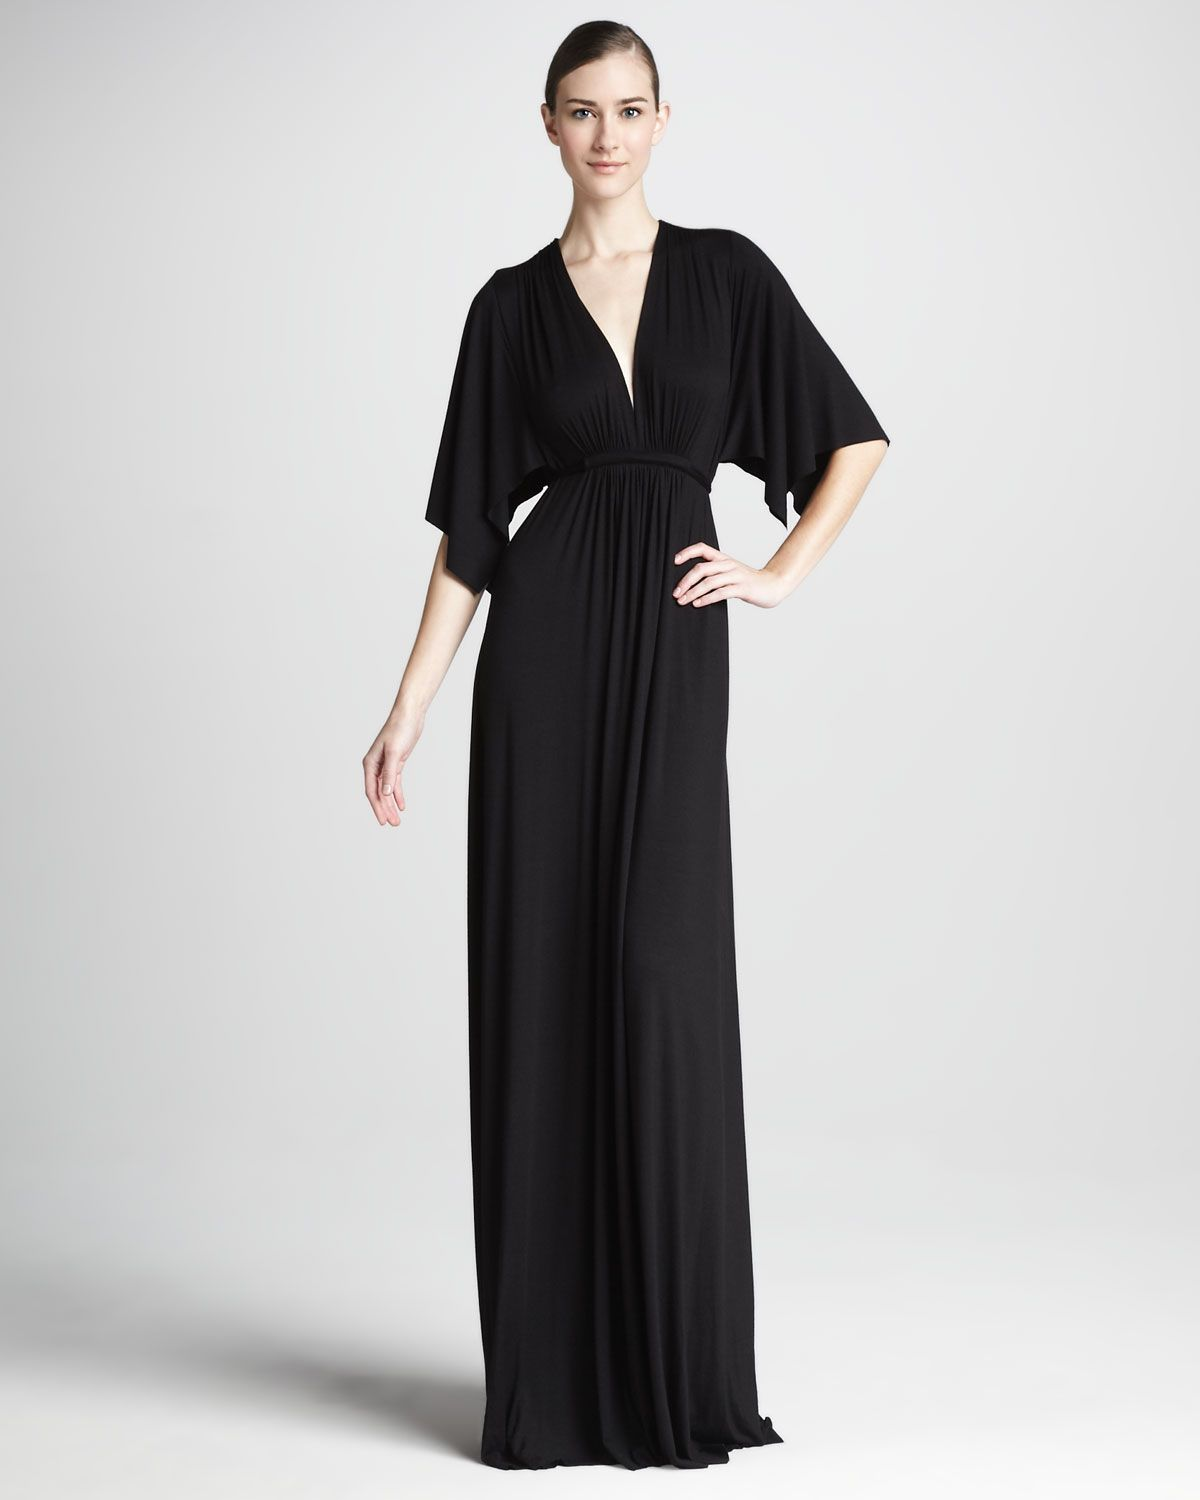 Rachel pally solid black caftan maxi dress womens black maxi solid black caftan maxi dress womens by rachel pally at neiman marcus ombrellifo Image collections